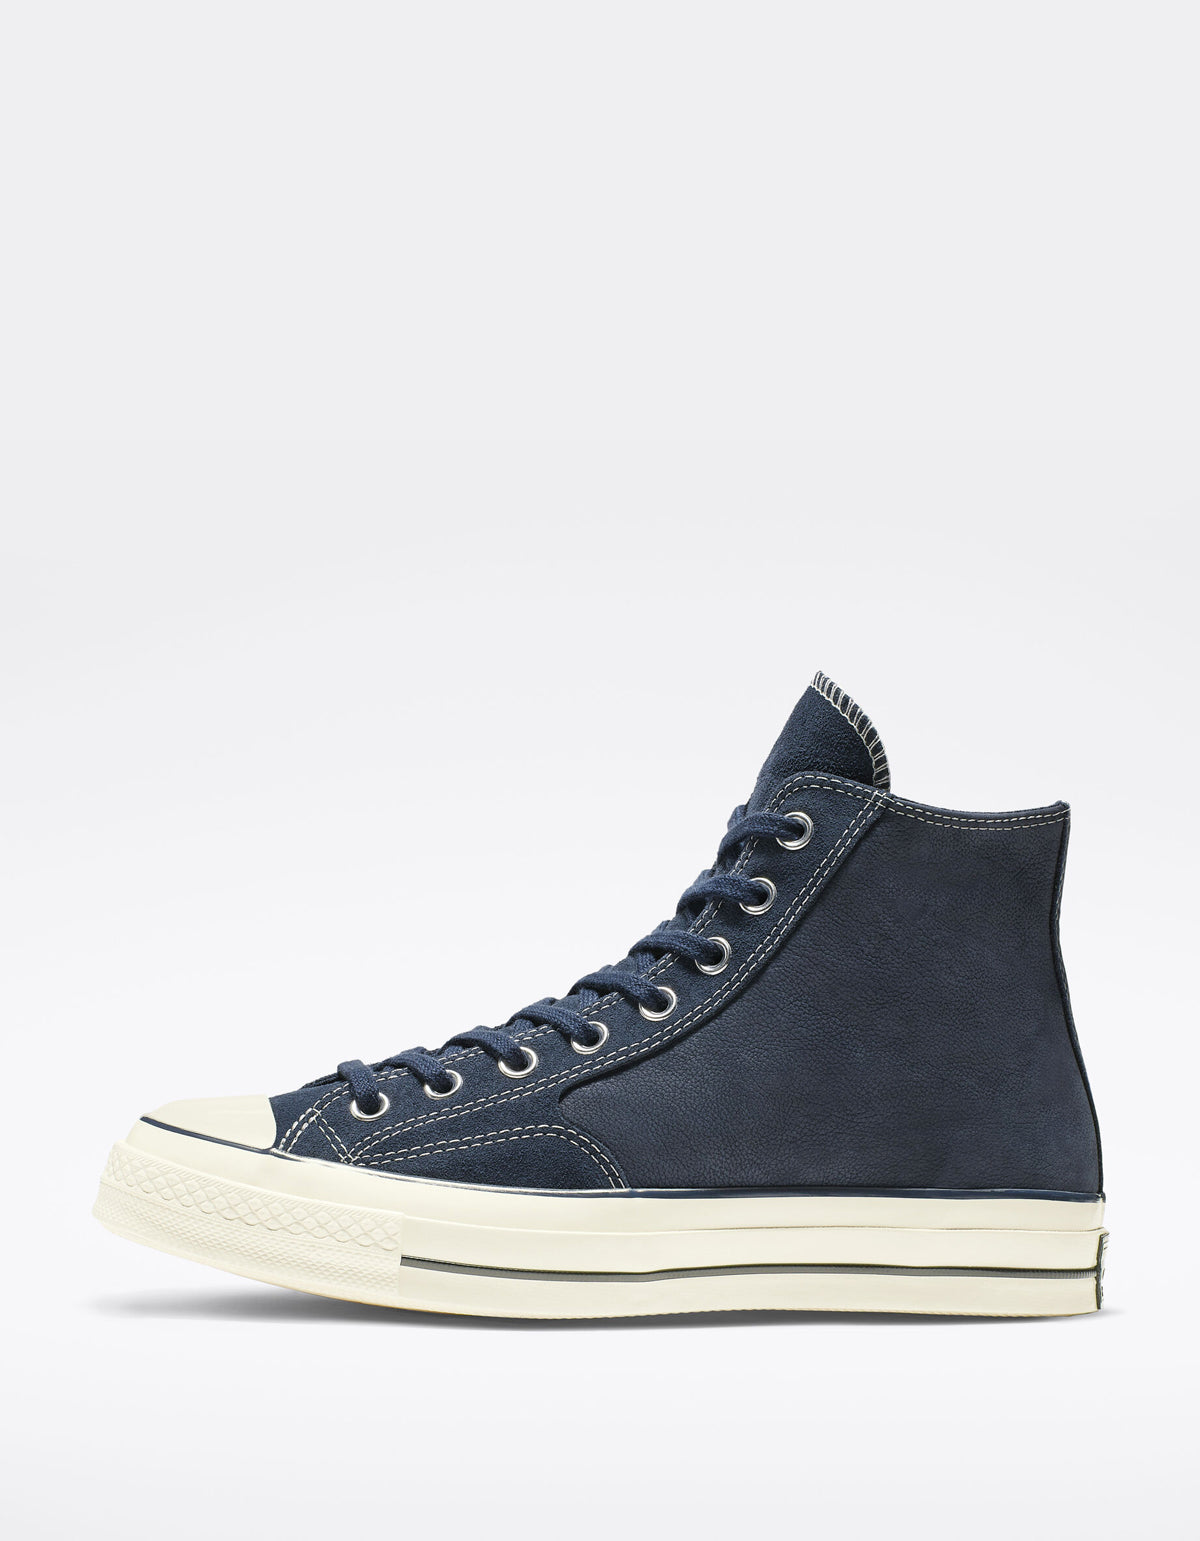 Converse Chuck 70 Leather High Top Obsidian Egret Black